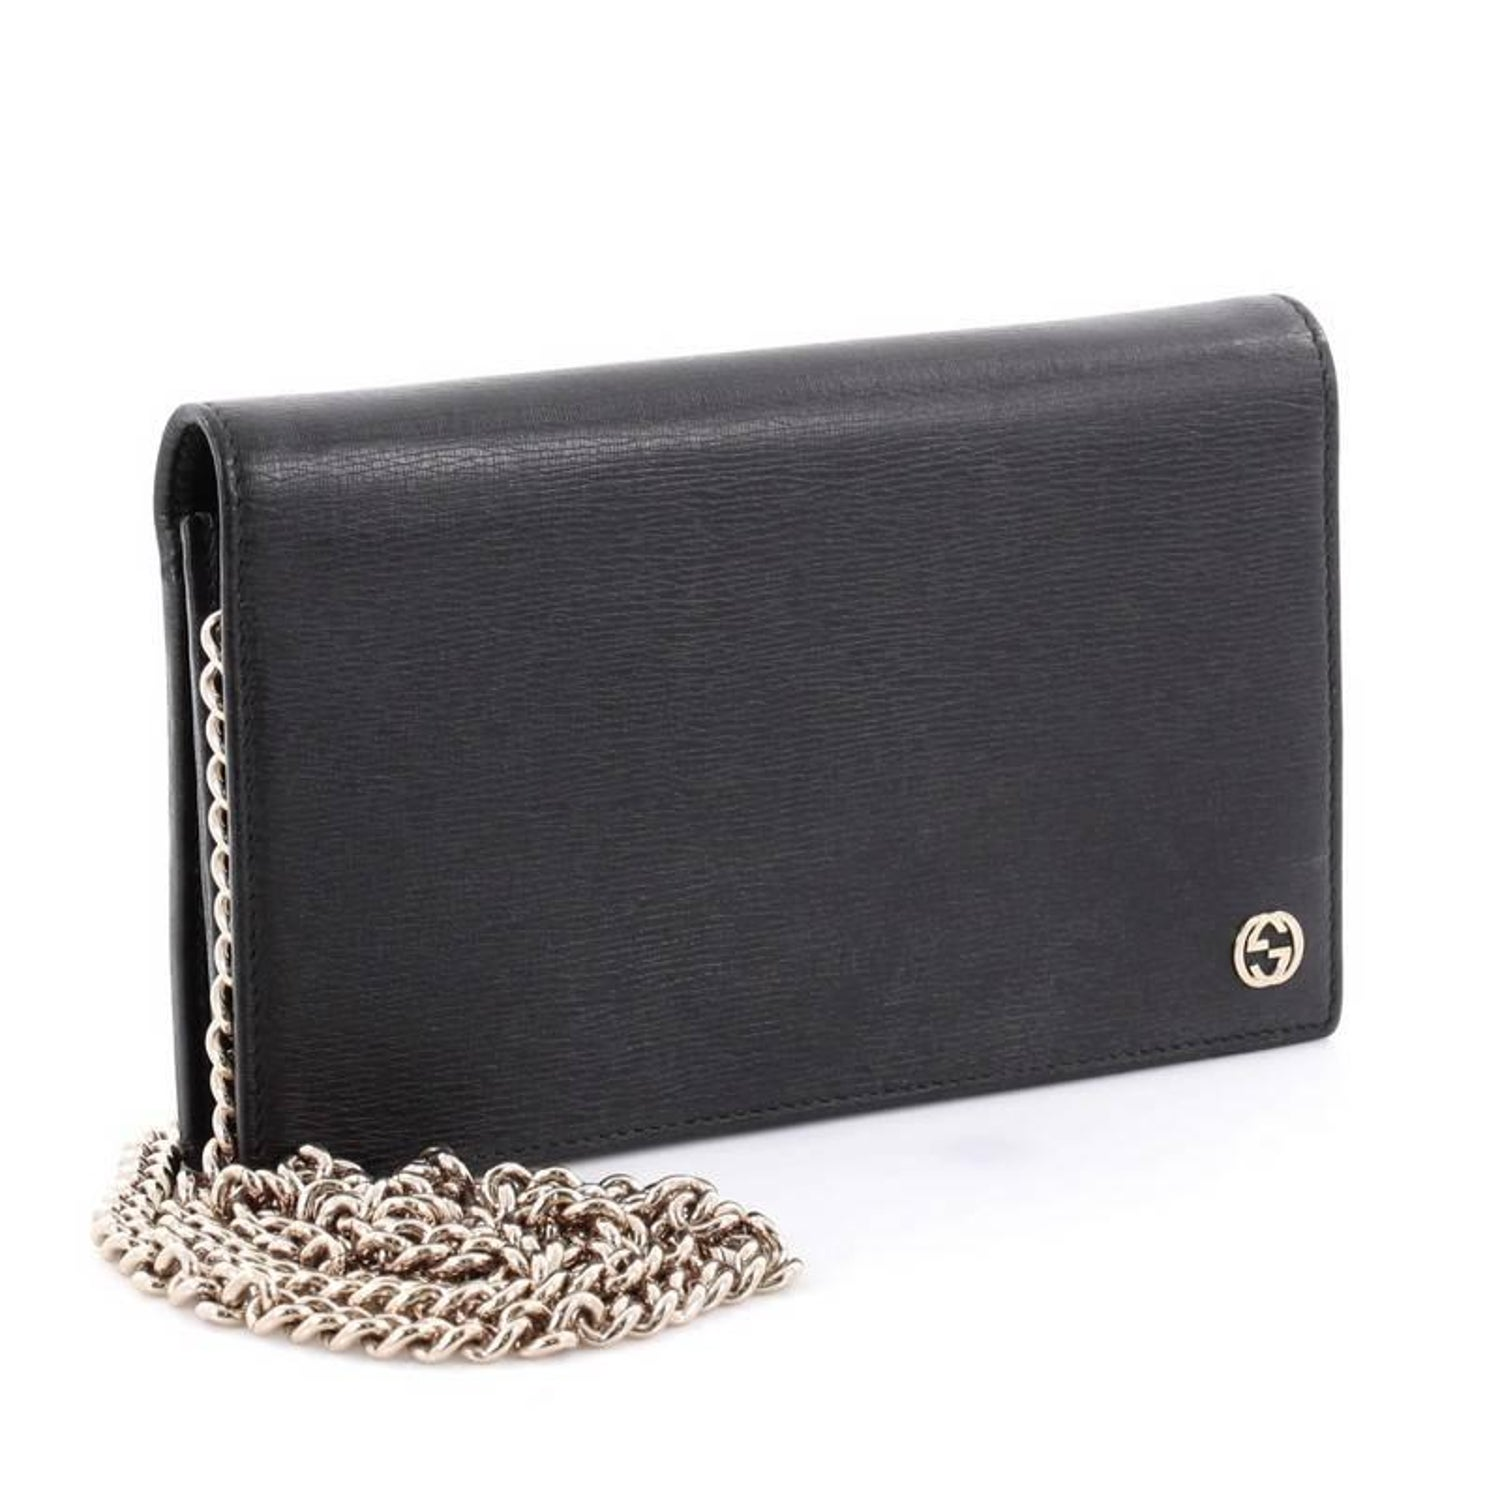 60428016234e Gucci Betty Chain Wallet Leather at 1stdibs